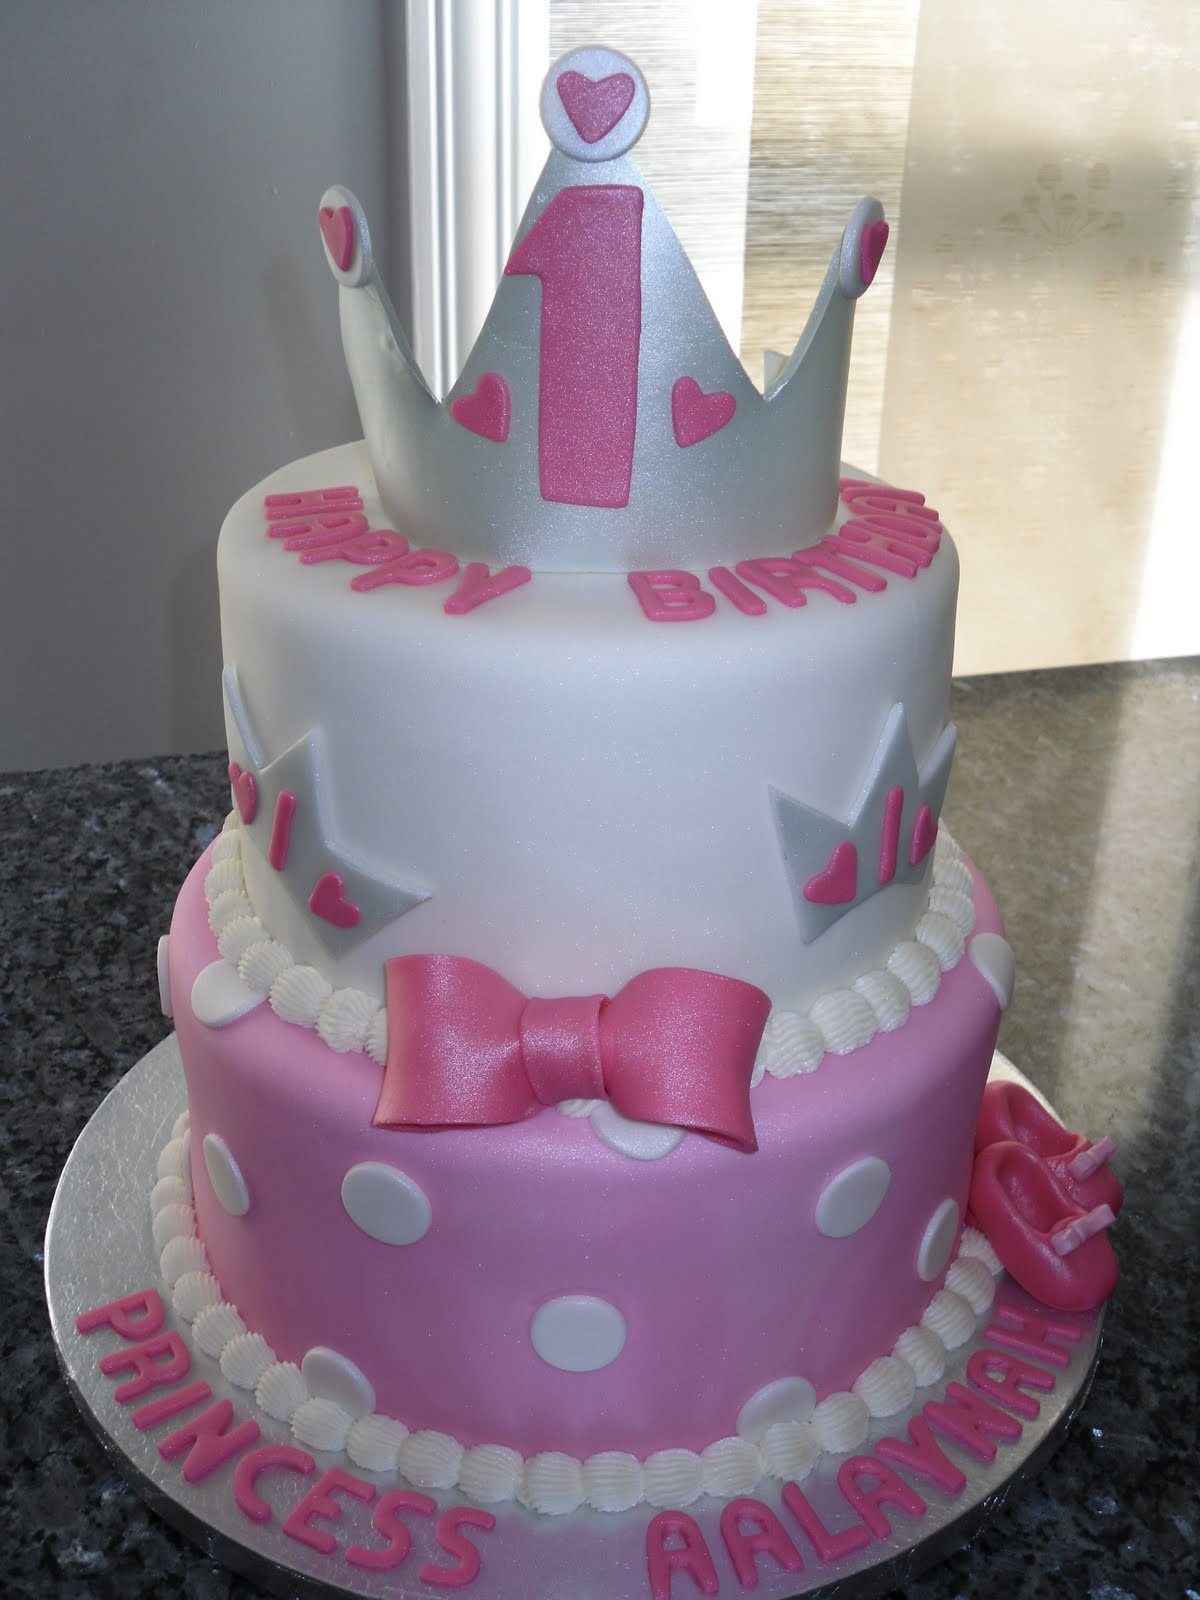 Best ideas about 1 Year Old Birthday Cake . Save or Pin Carat Cakes Two Very Special e Year Old Birthdays Now.